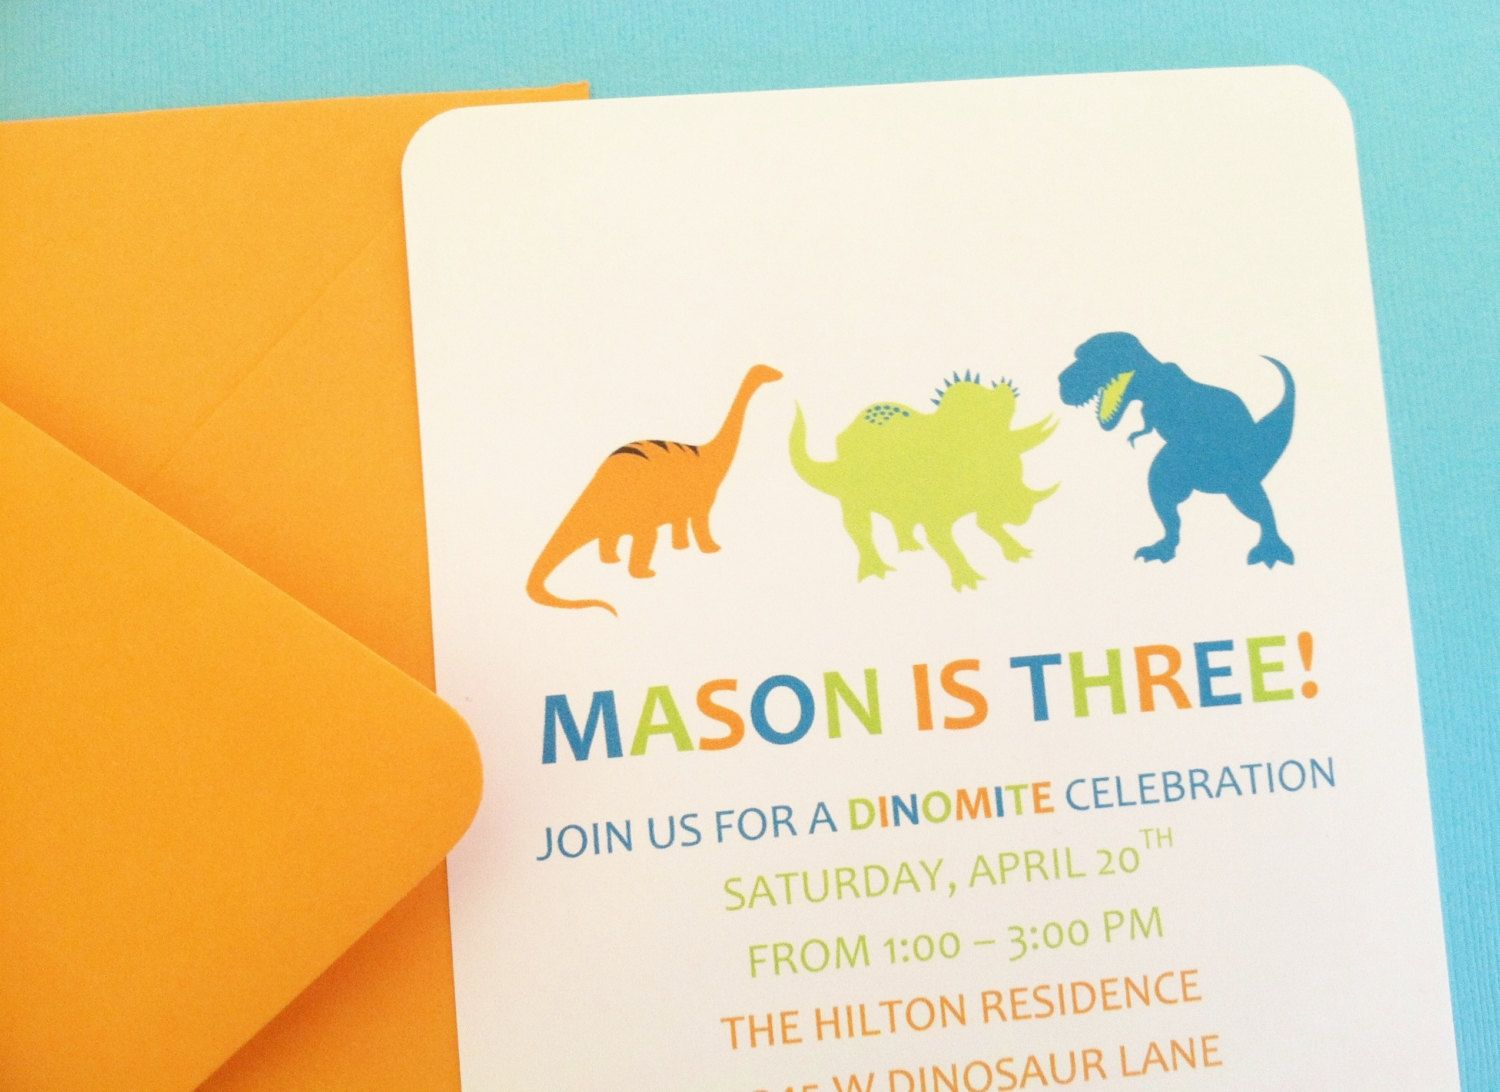 Dinosaur birthday party invitation by littlemavens on etsy 200 dinosaur birthday party invitation by littlemavens on etsy 200 stopboris Images